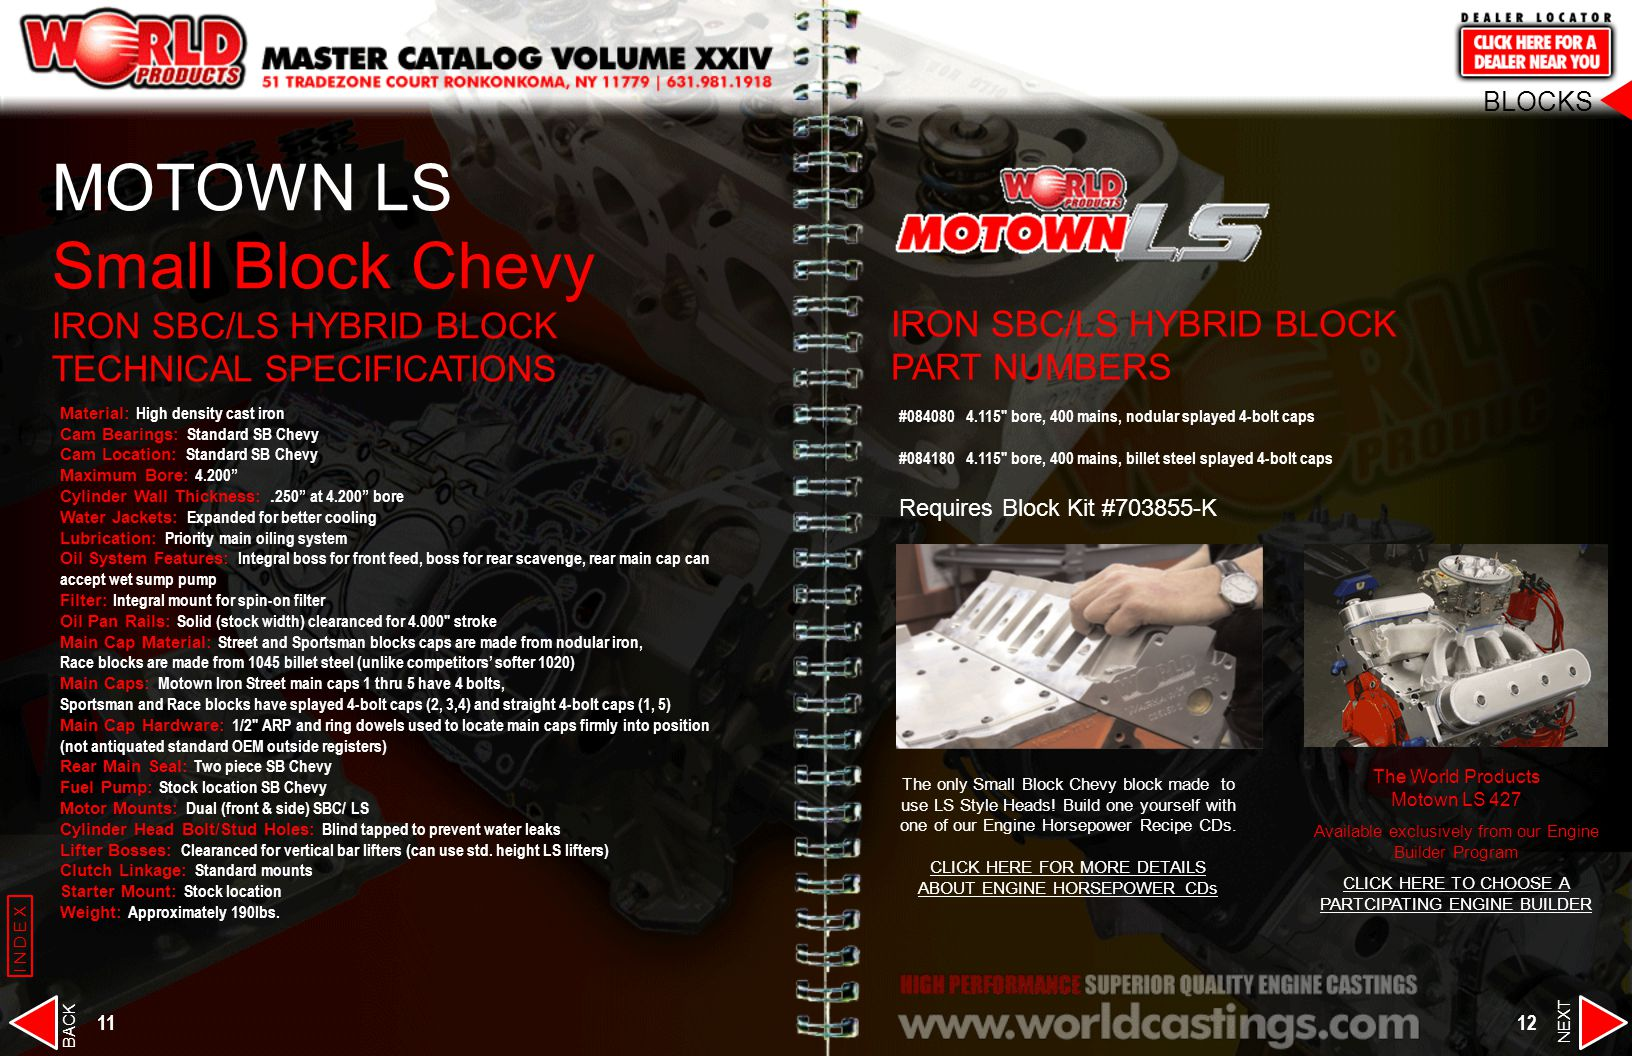 Small Block Chevy IRON SBC/LS HYBRID BLOCK TECHNICAL SPECIFICATIONS